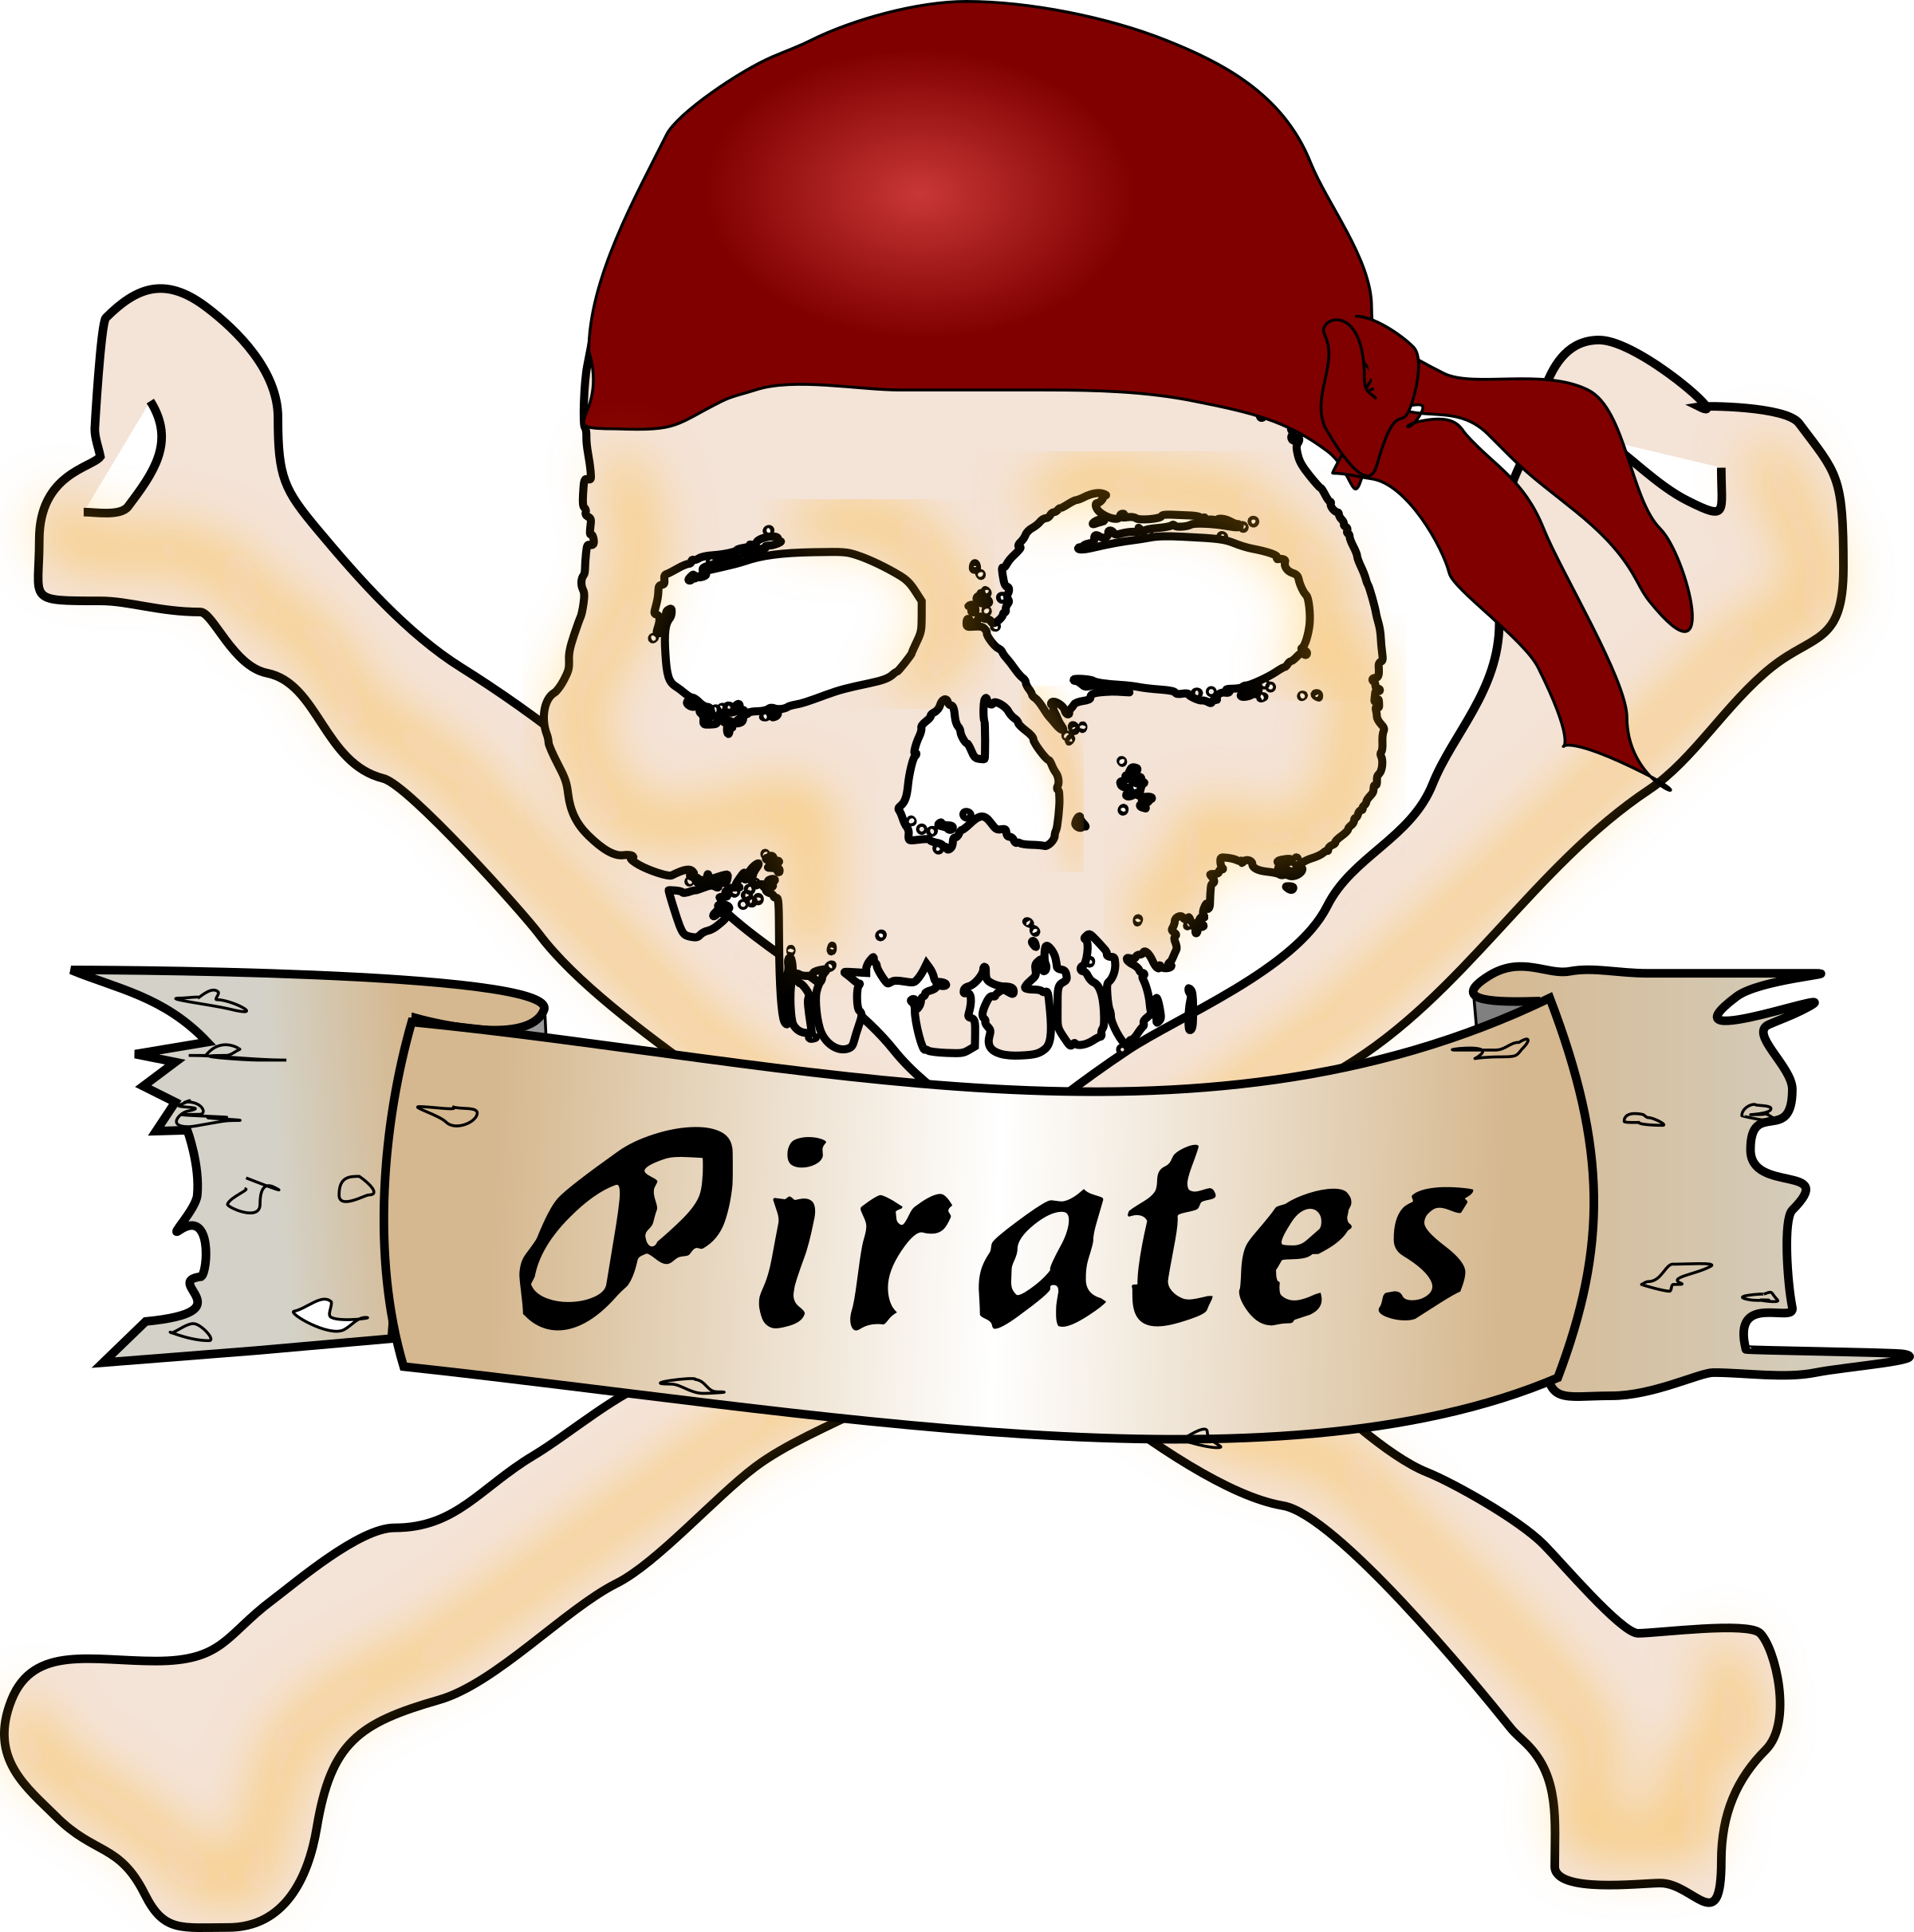 pirate clipart at getdrawings com free for personal use pirate rh getdrawings com free printable pirate clip art free pirate clip art downloads